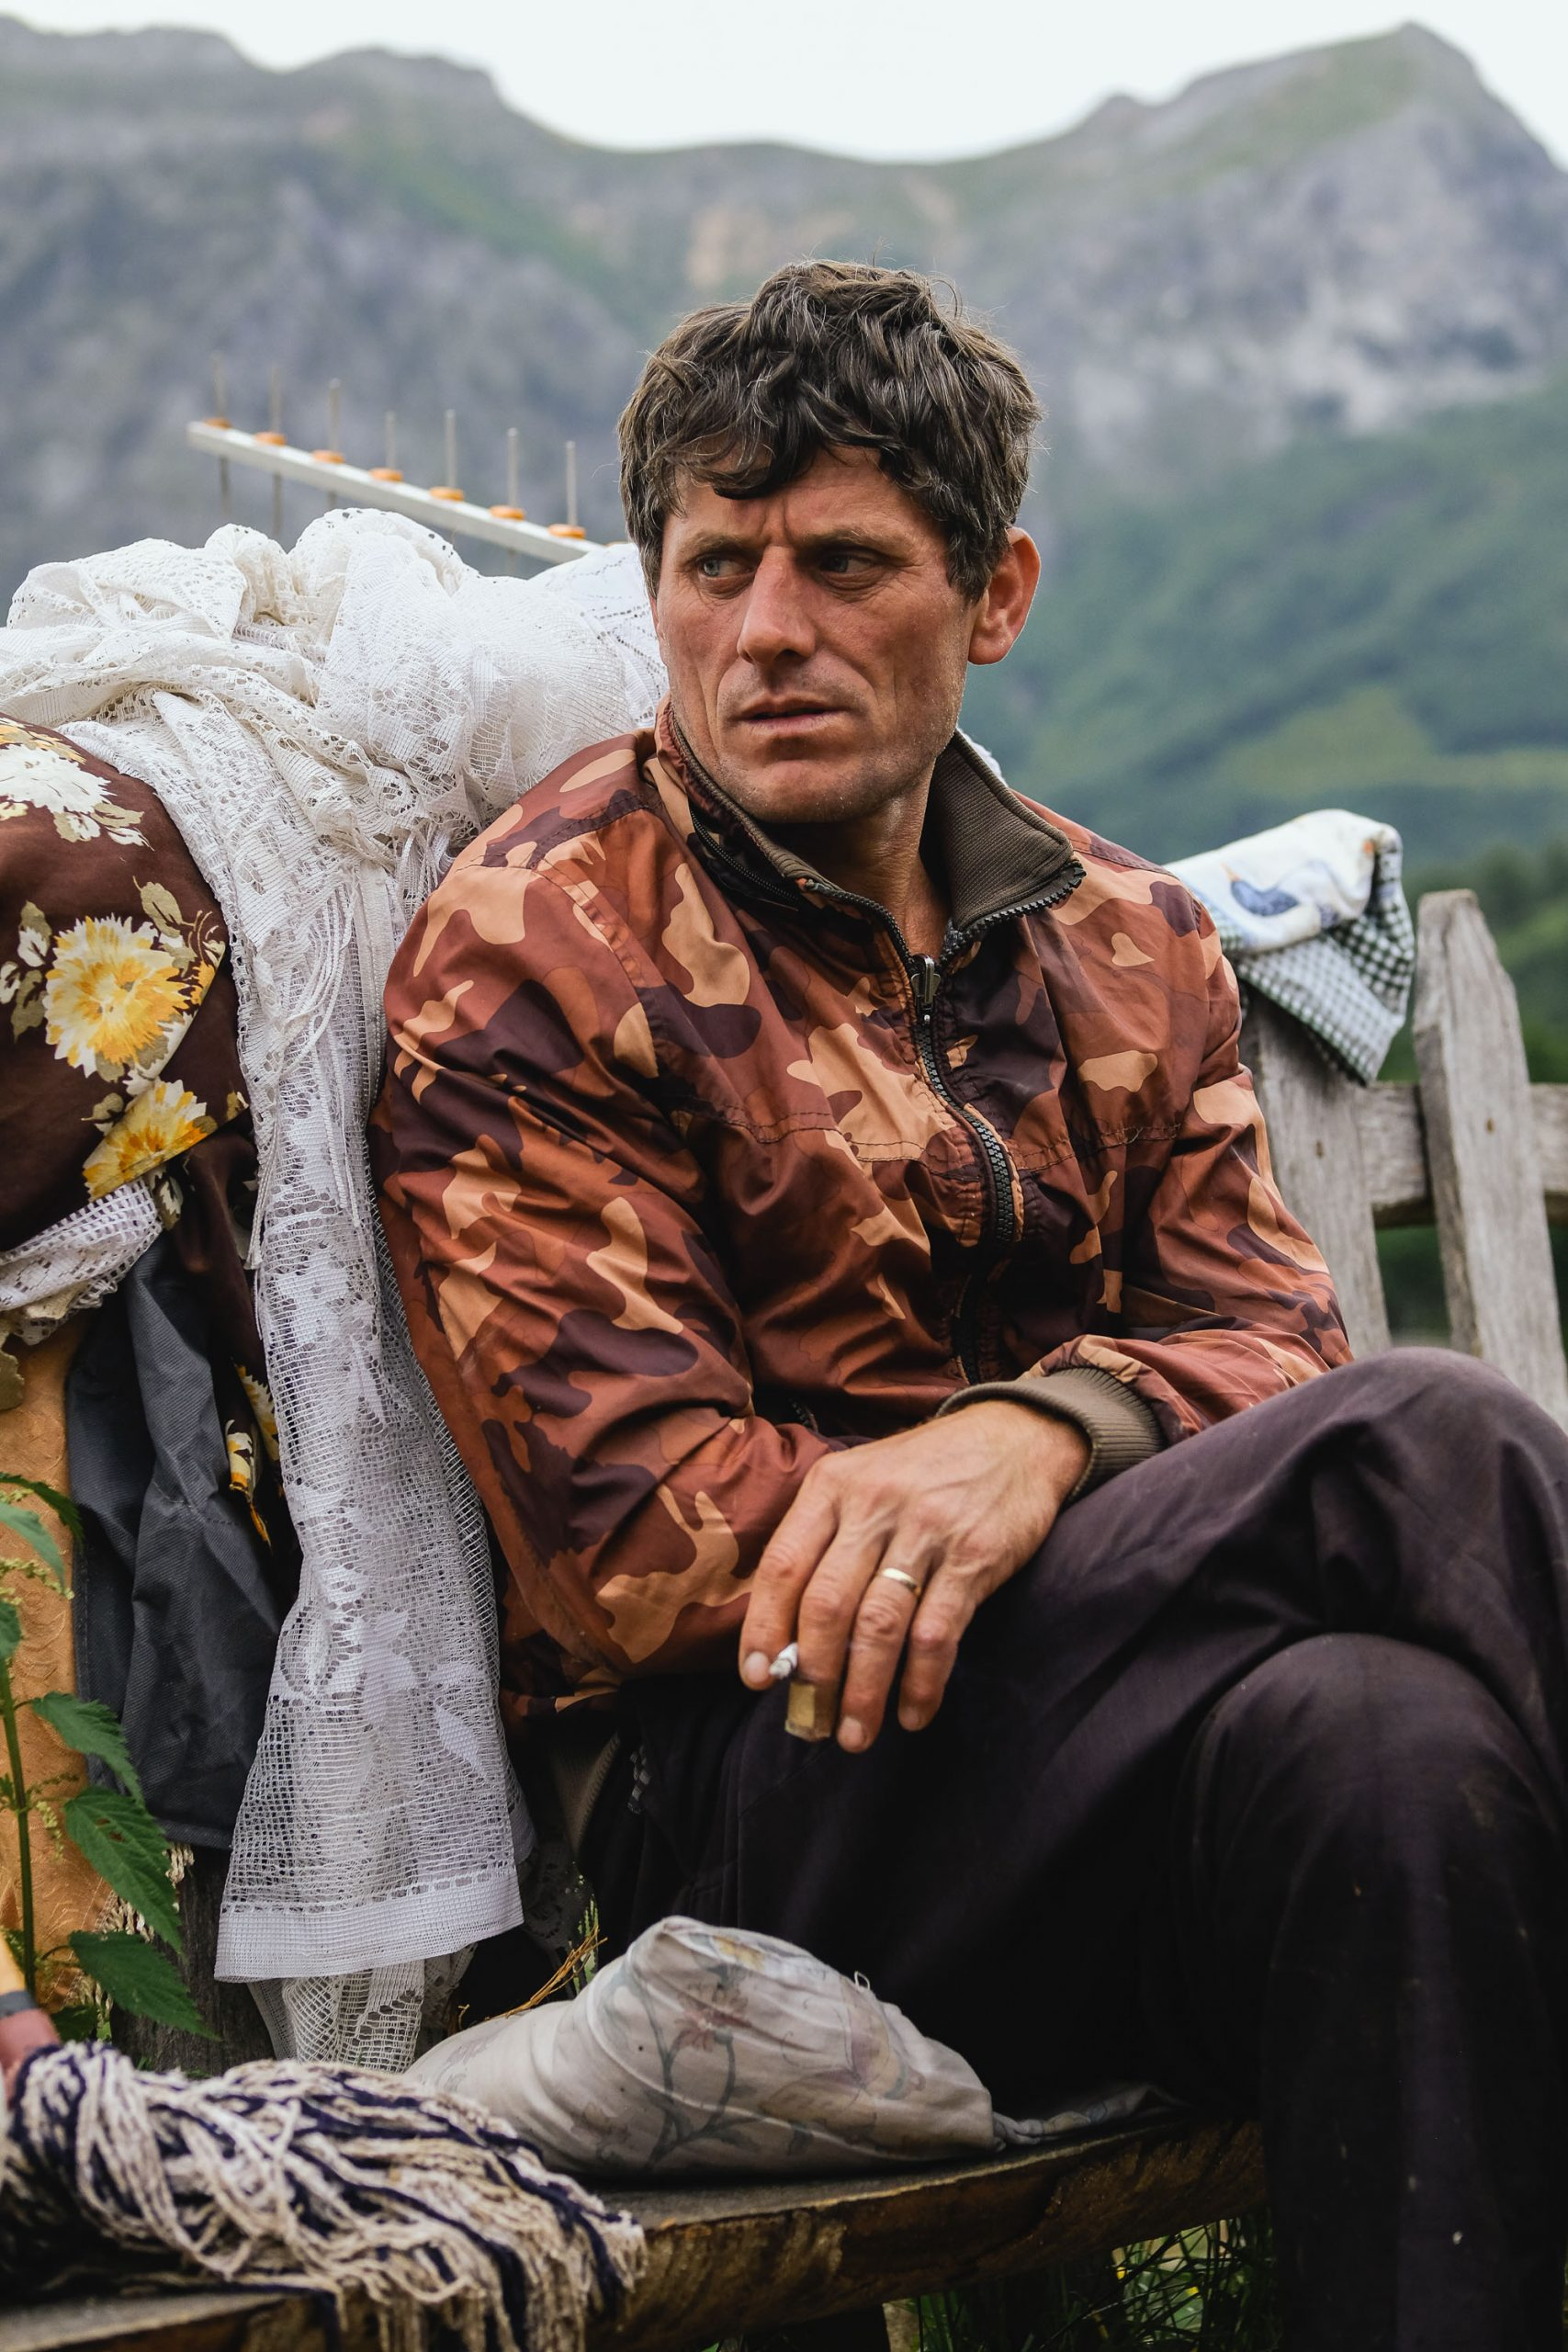 Gazmend Bikaj rests at his family's encampment in Koprisht, Kelmend region, Albania. During the summer he cares for a flock of sheep belonging to a farmer near the city if Shkoder, taking them to graze around pastures in the high alpine areas in Kelmend.